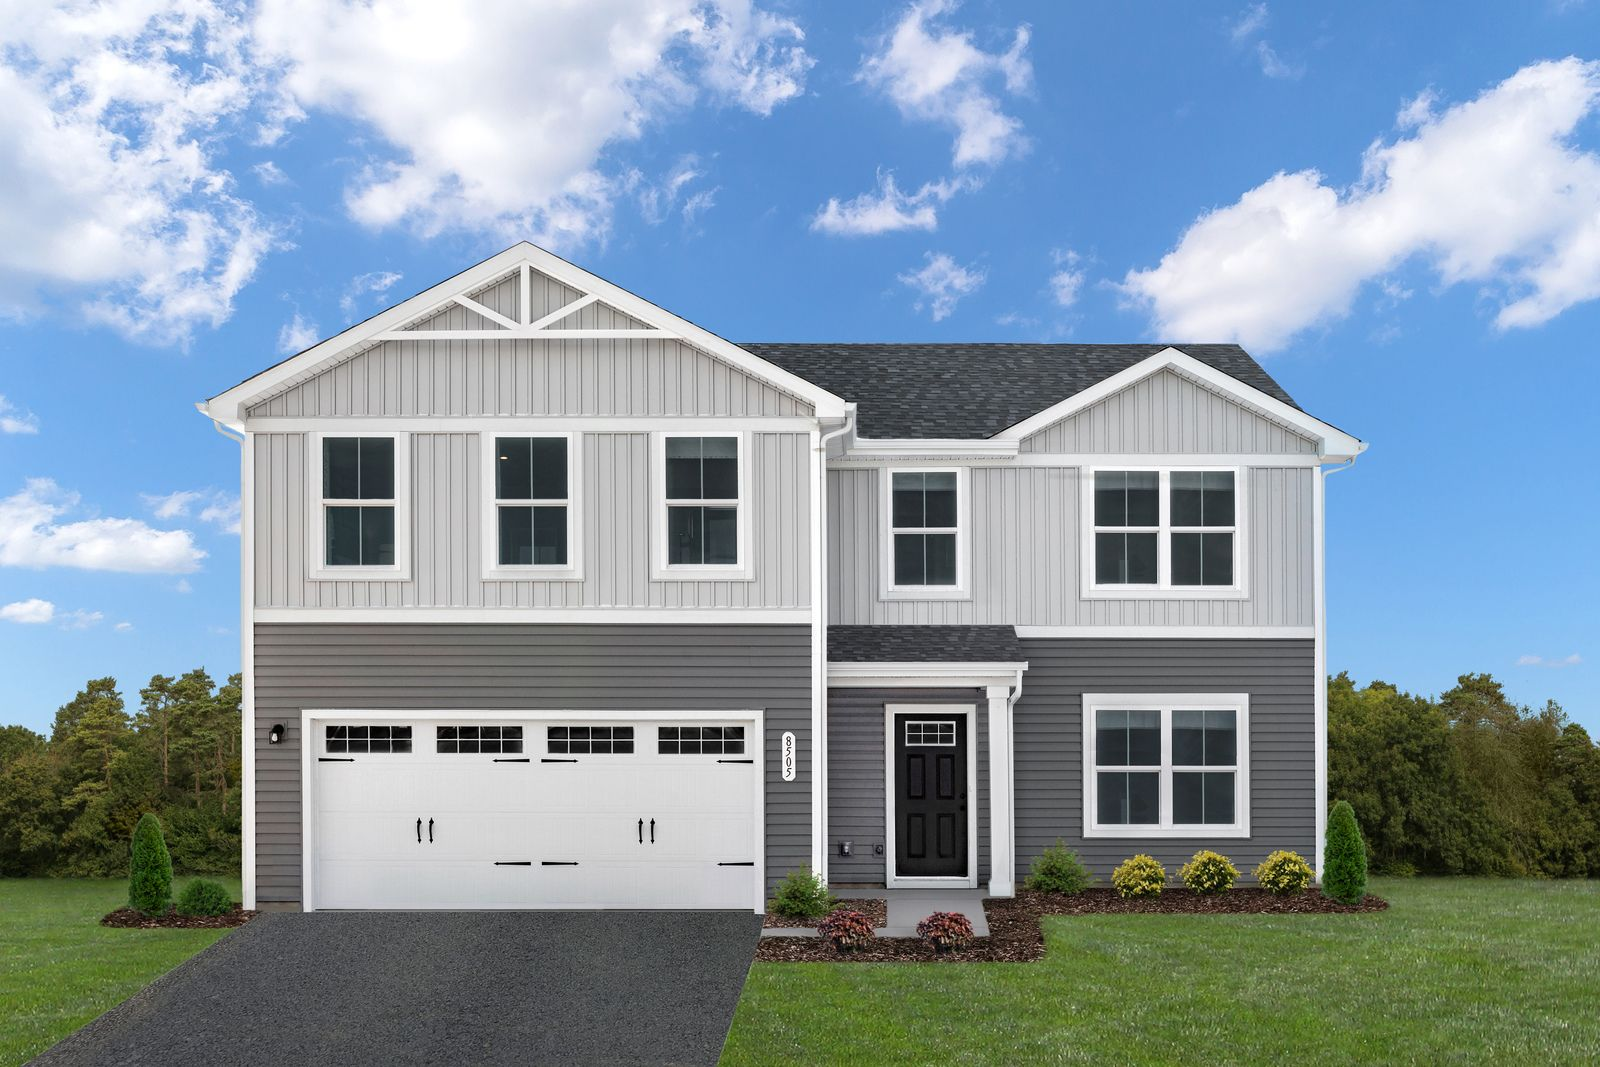 WELCOME TO CHESTNUT RIDGE:Own a single with 3-5 bedrooms, a 2-car garage and a spacious yard in a quiet Chester County location minutes from 322 for less than a new townhome.Click here toschedule a visit today!